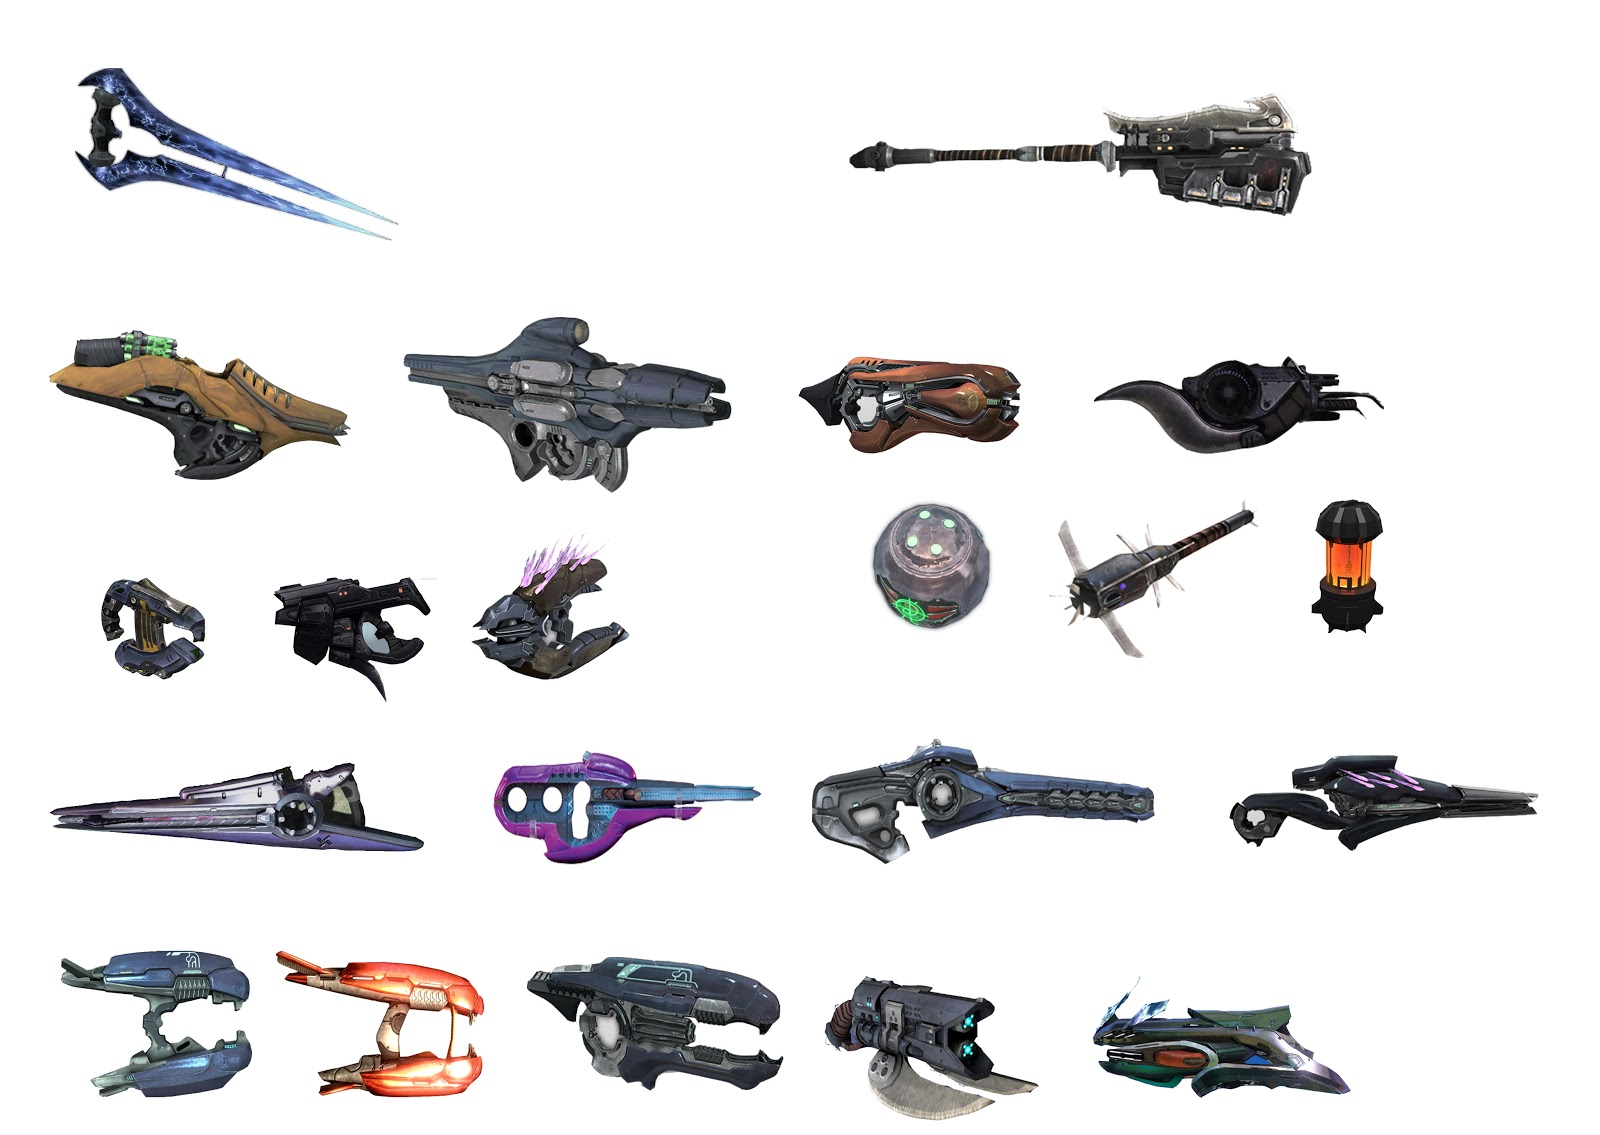 Halo 5 Covenant Weapons List